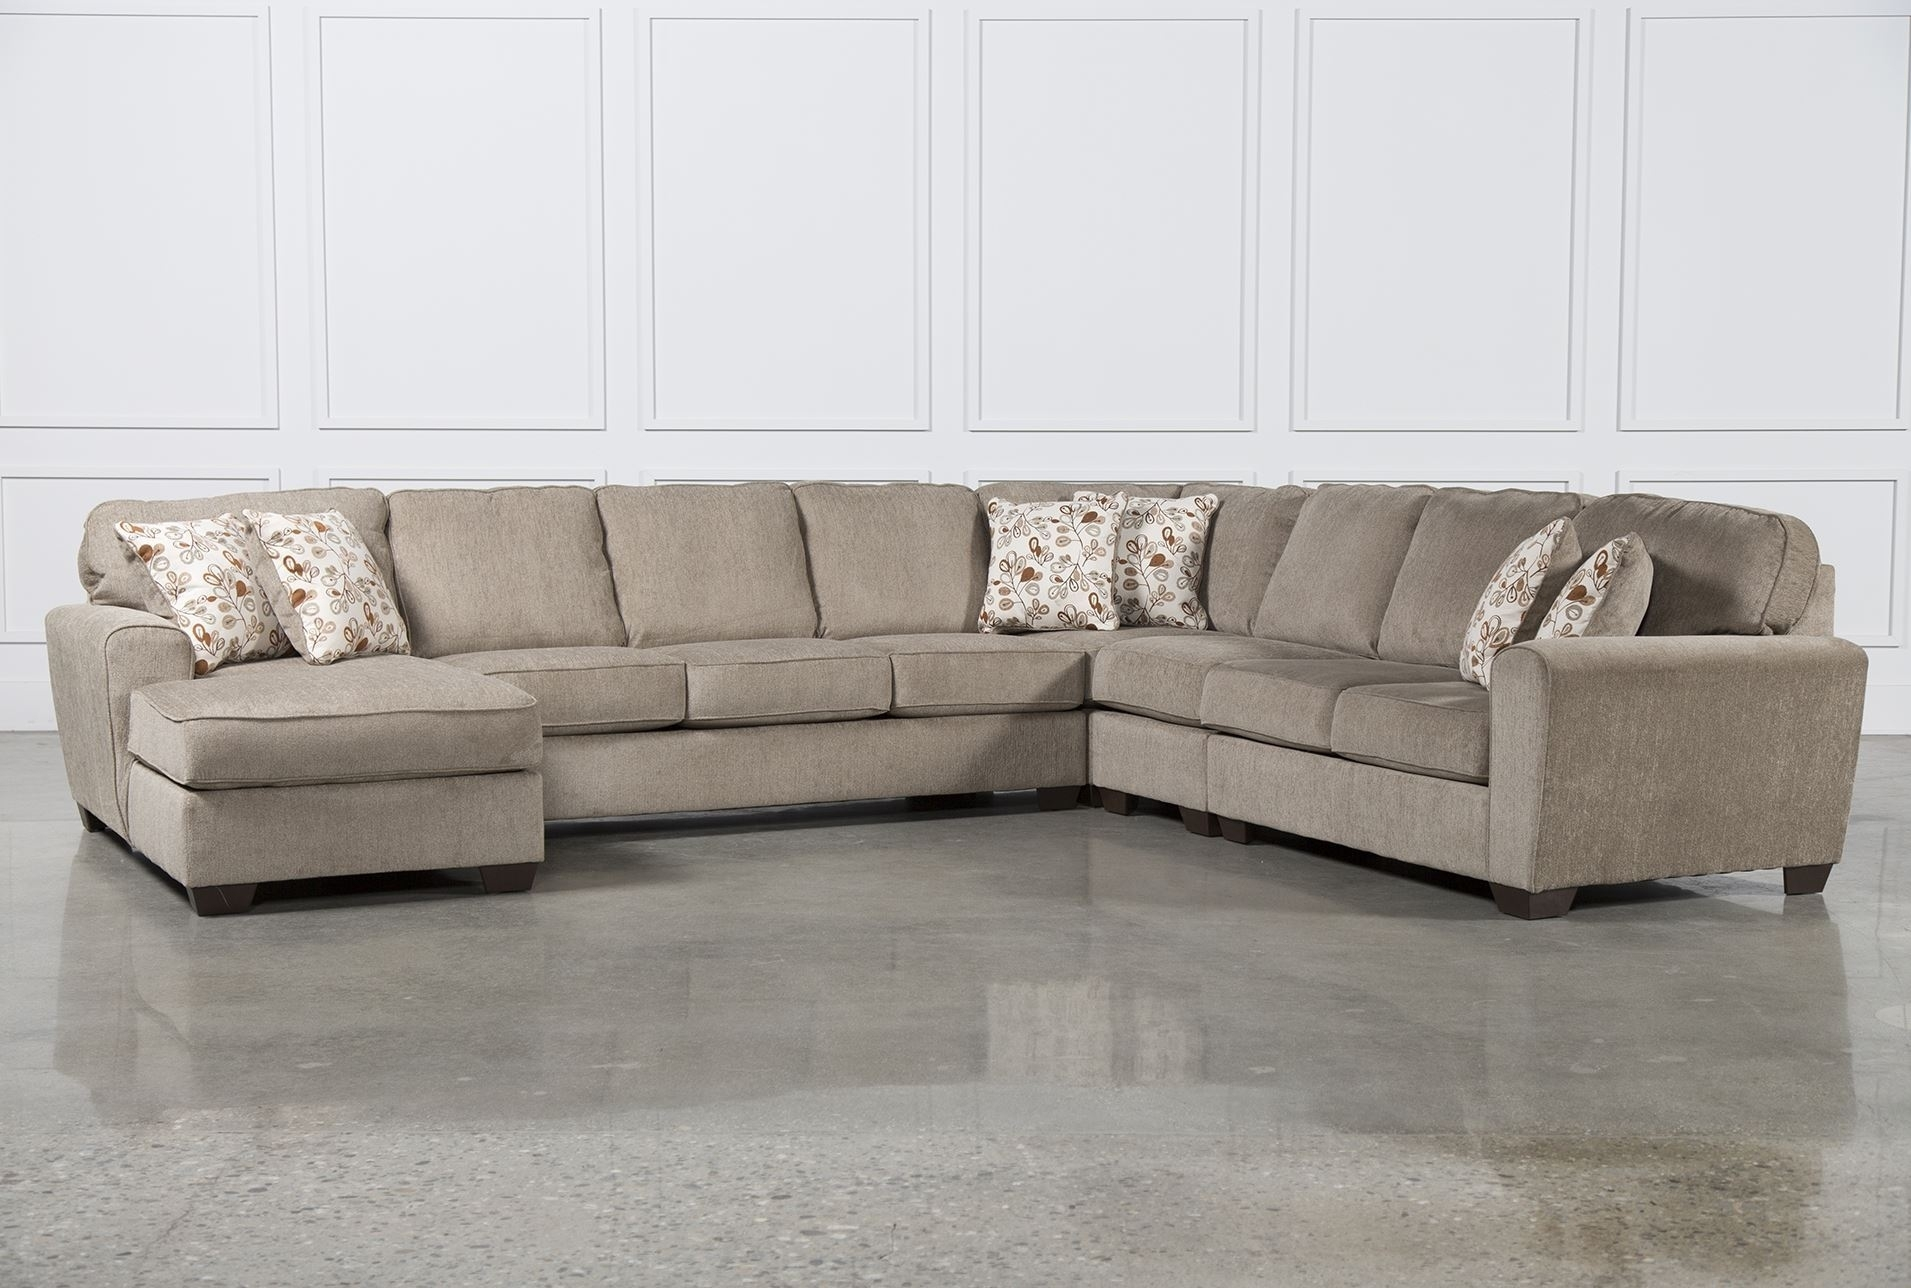 50 Amazing 4 Piece Sectional Sofa Be161443 – Sofa Q regarding Alder 4 Piece Sectionals